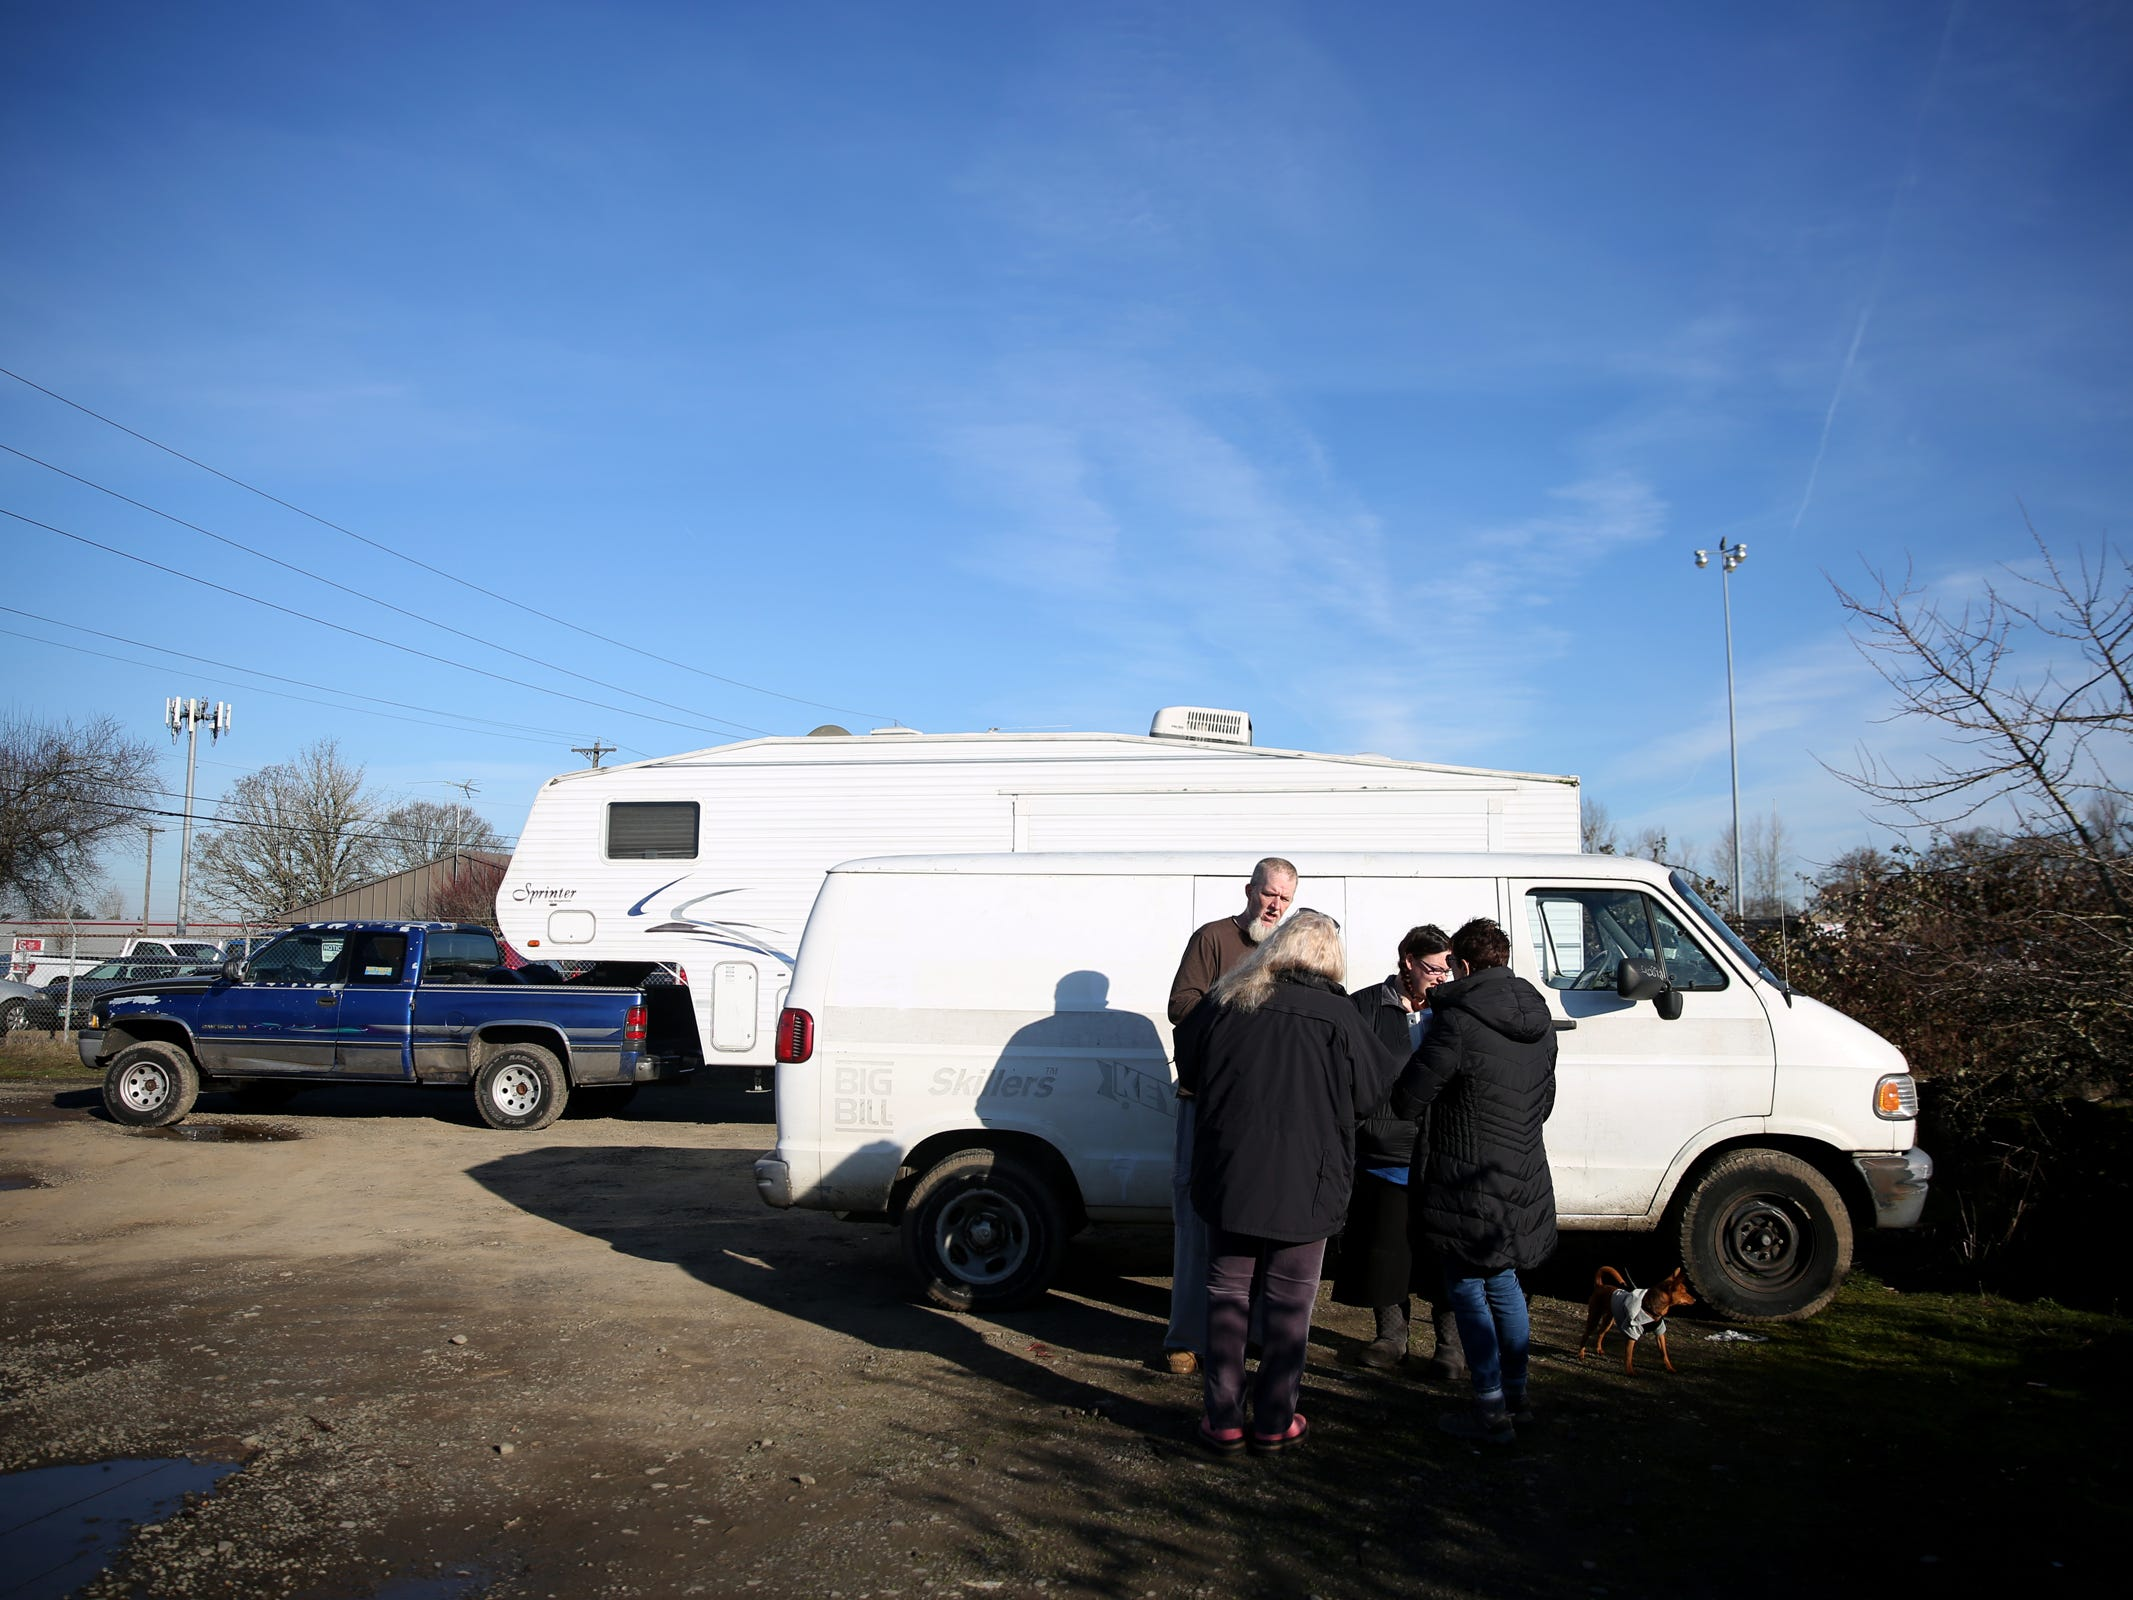 Aaron Webber, 43, and Cheyanne West, 24, give their information to volunteers Lorrie Walker and Pamella Watson outside the van they live in with their dog during the annual Point-in-Time homeless count in Salem on Wednesday, Jan. 30, 2019. The number of people counted helps local programs qualify for federal funds to combat homelessness.